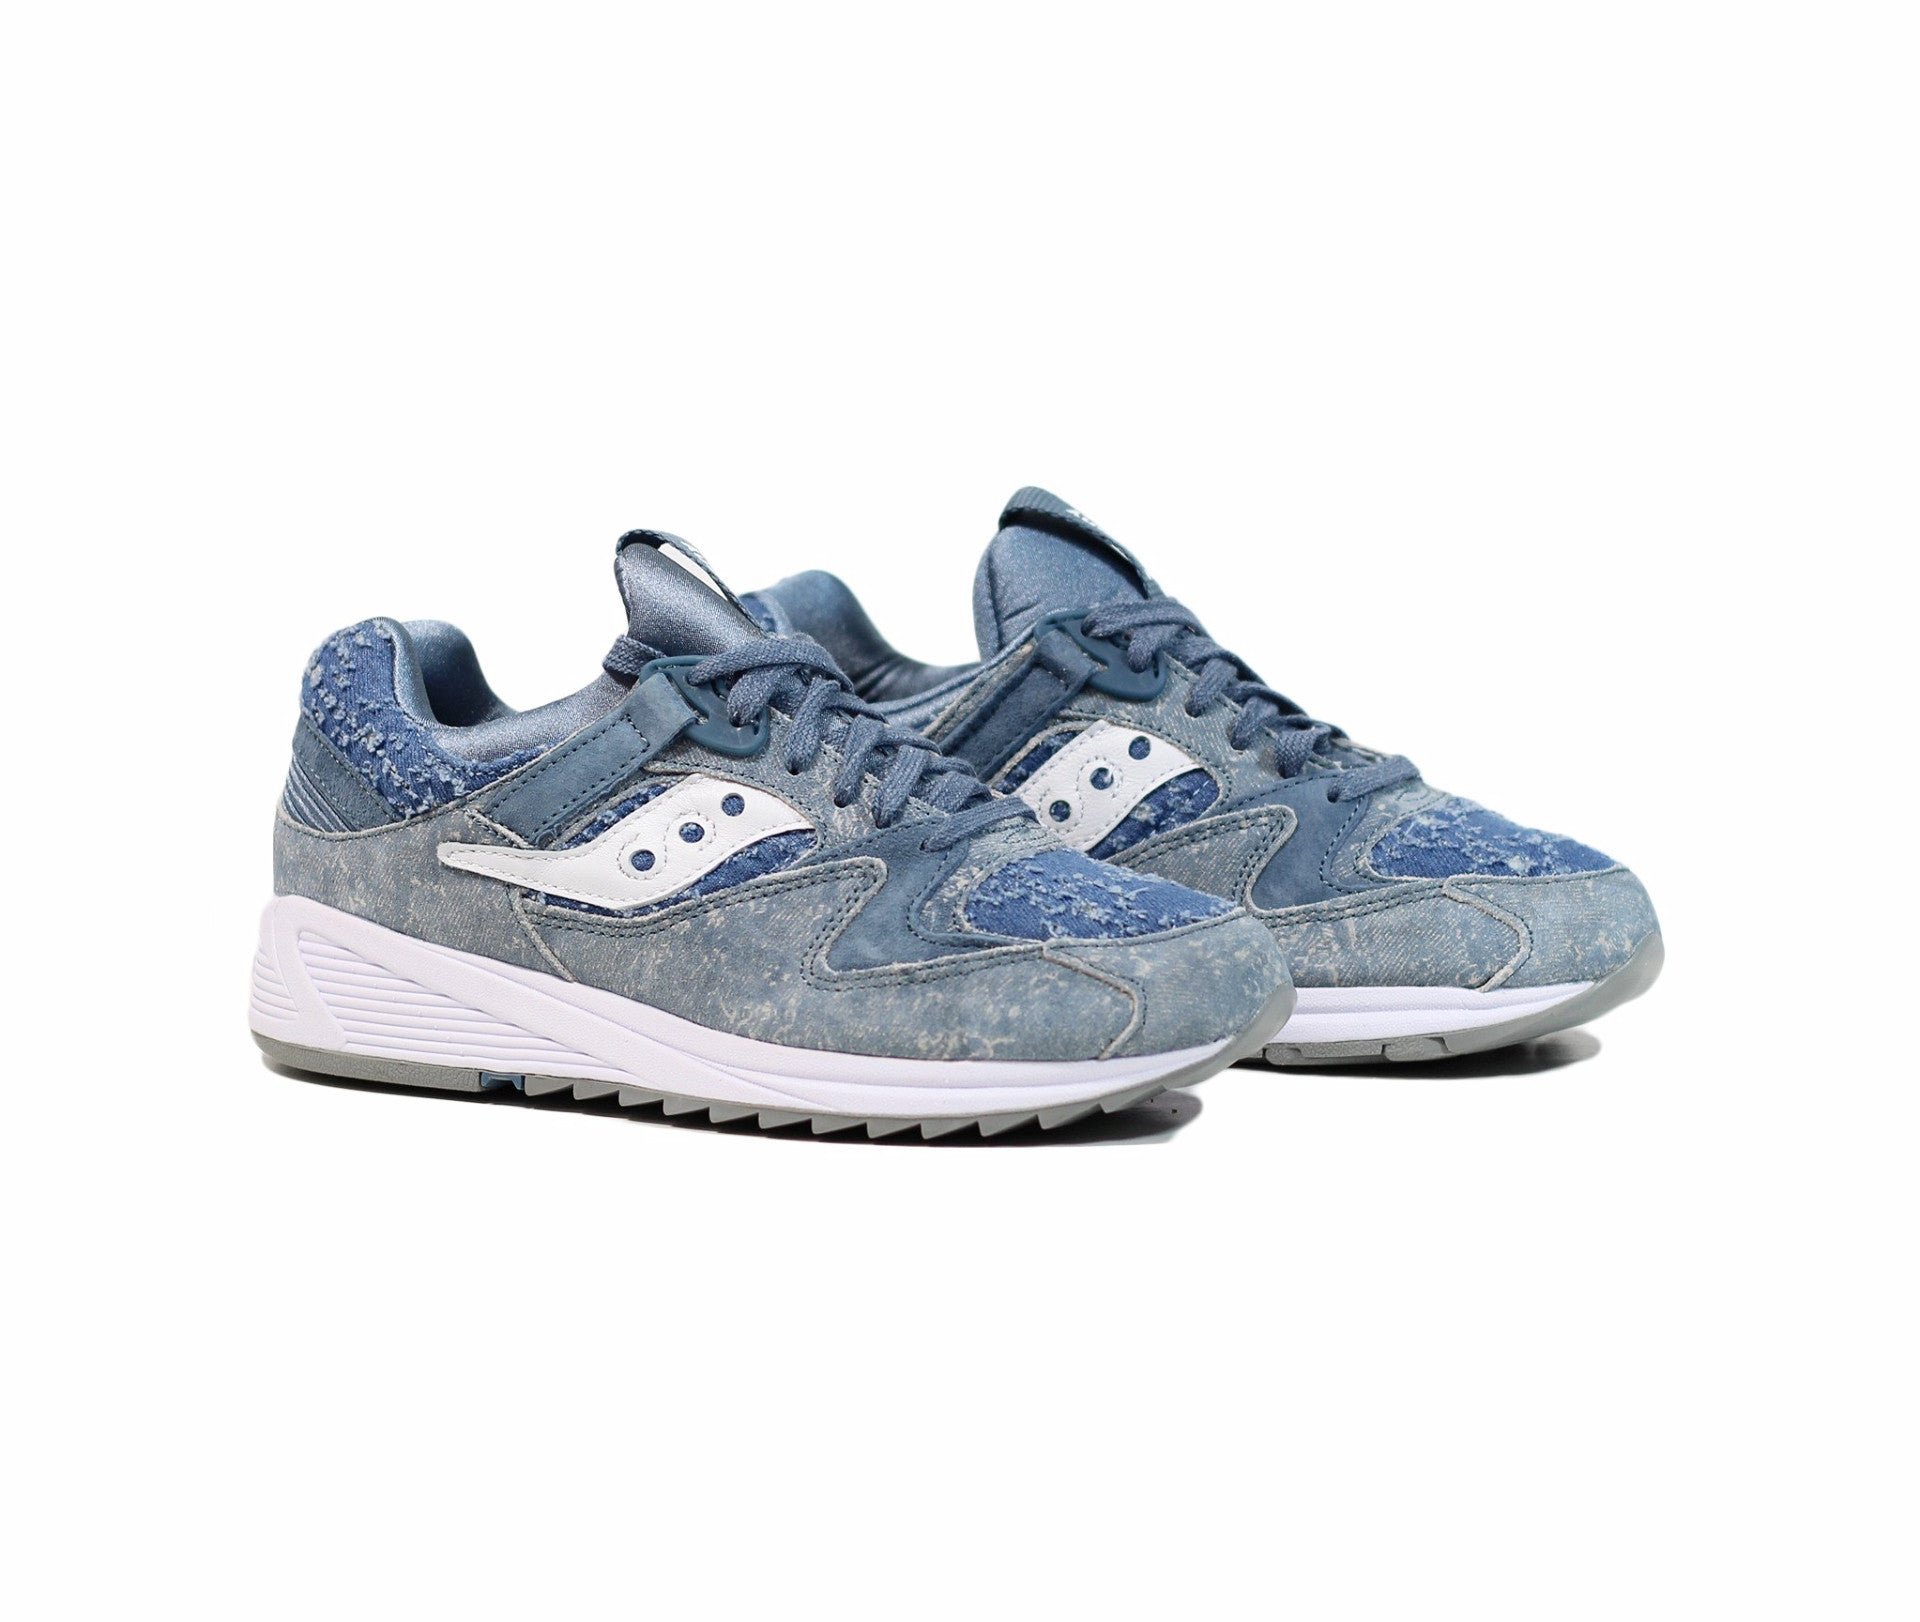 0d2554611f6e Saucony Grid 8500 MD - Blu Den – History of New York Powered by  Sneaker  Lounge